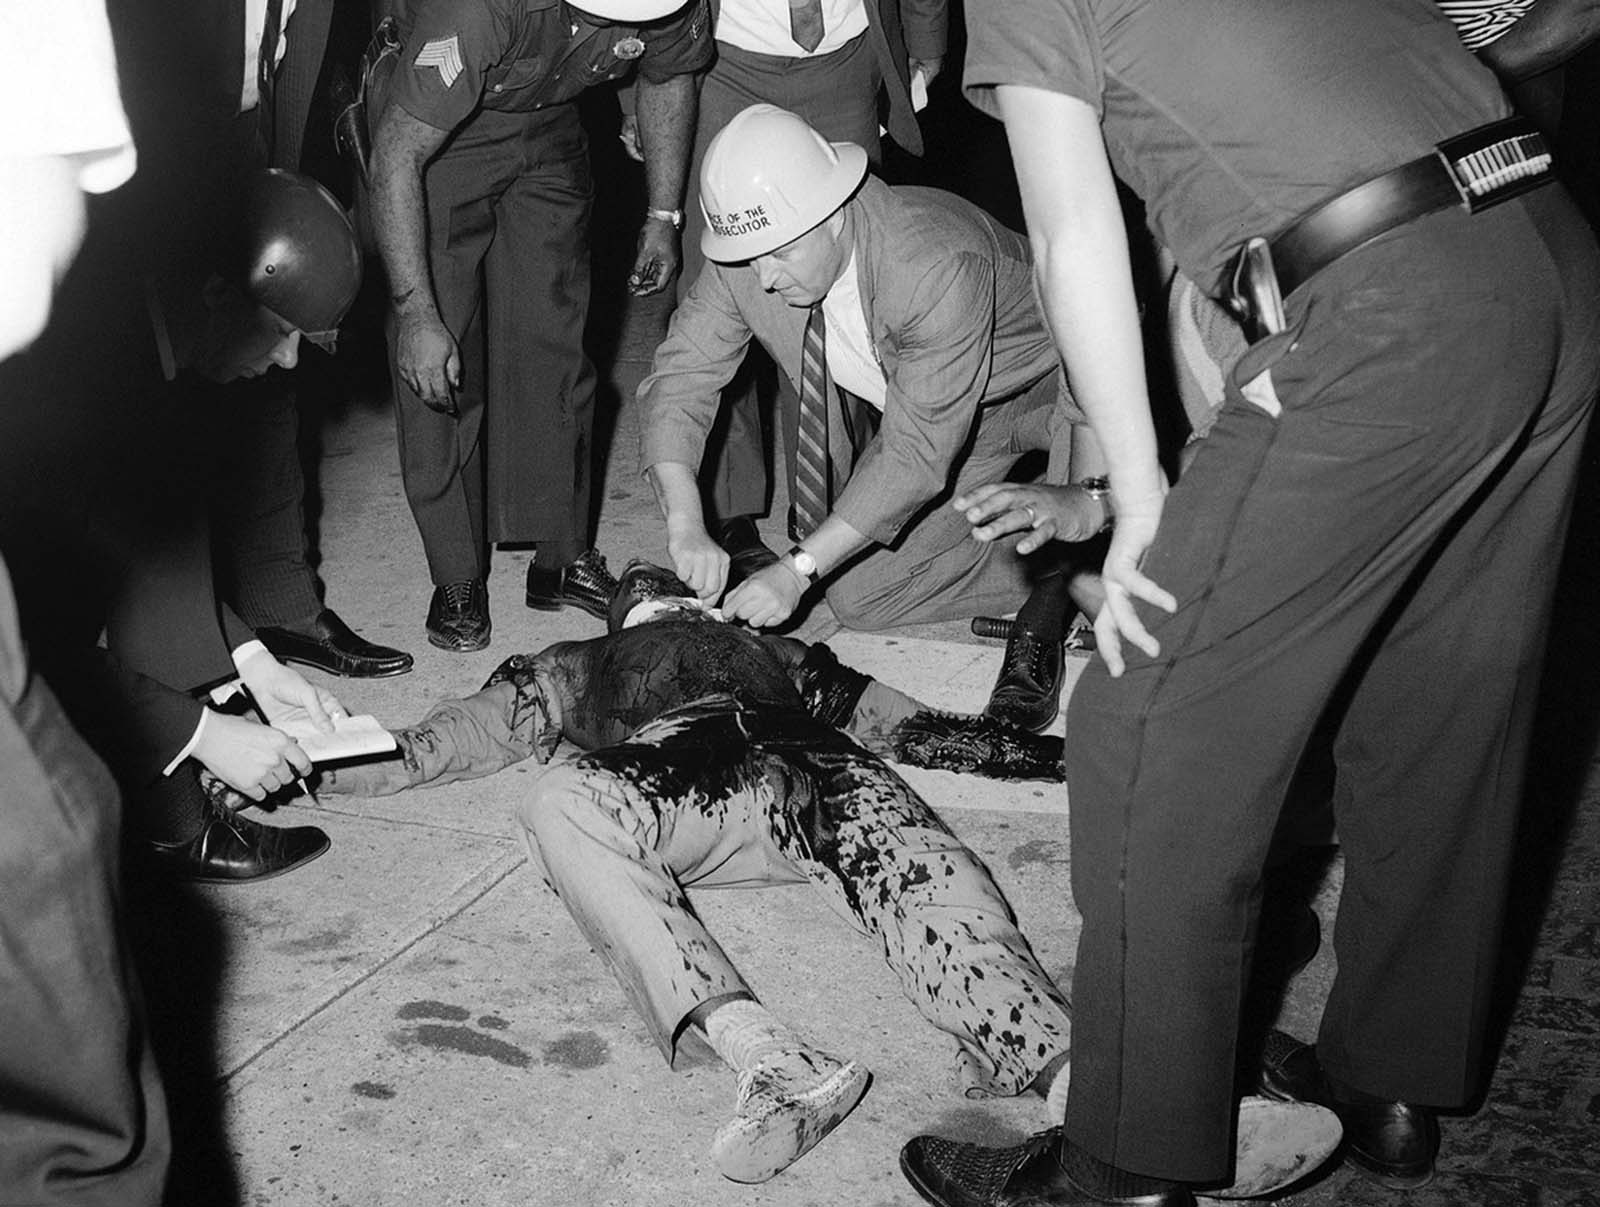 A black youth who was shot either in the neck or shoulder during a flare-up of racial violence in Jersey City, lies on a sidewalk while battle-helmeted policemen stand by to aid him on August 3, 1964. The youth, identified as Louis Mitchell, was among group of young people standing near a housing project who were hurling objects at the police. It was not determined how the youth was shot. At least one other resident was shot and several police officers and rioters were injured in the outburst.